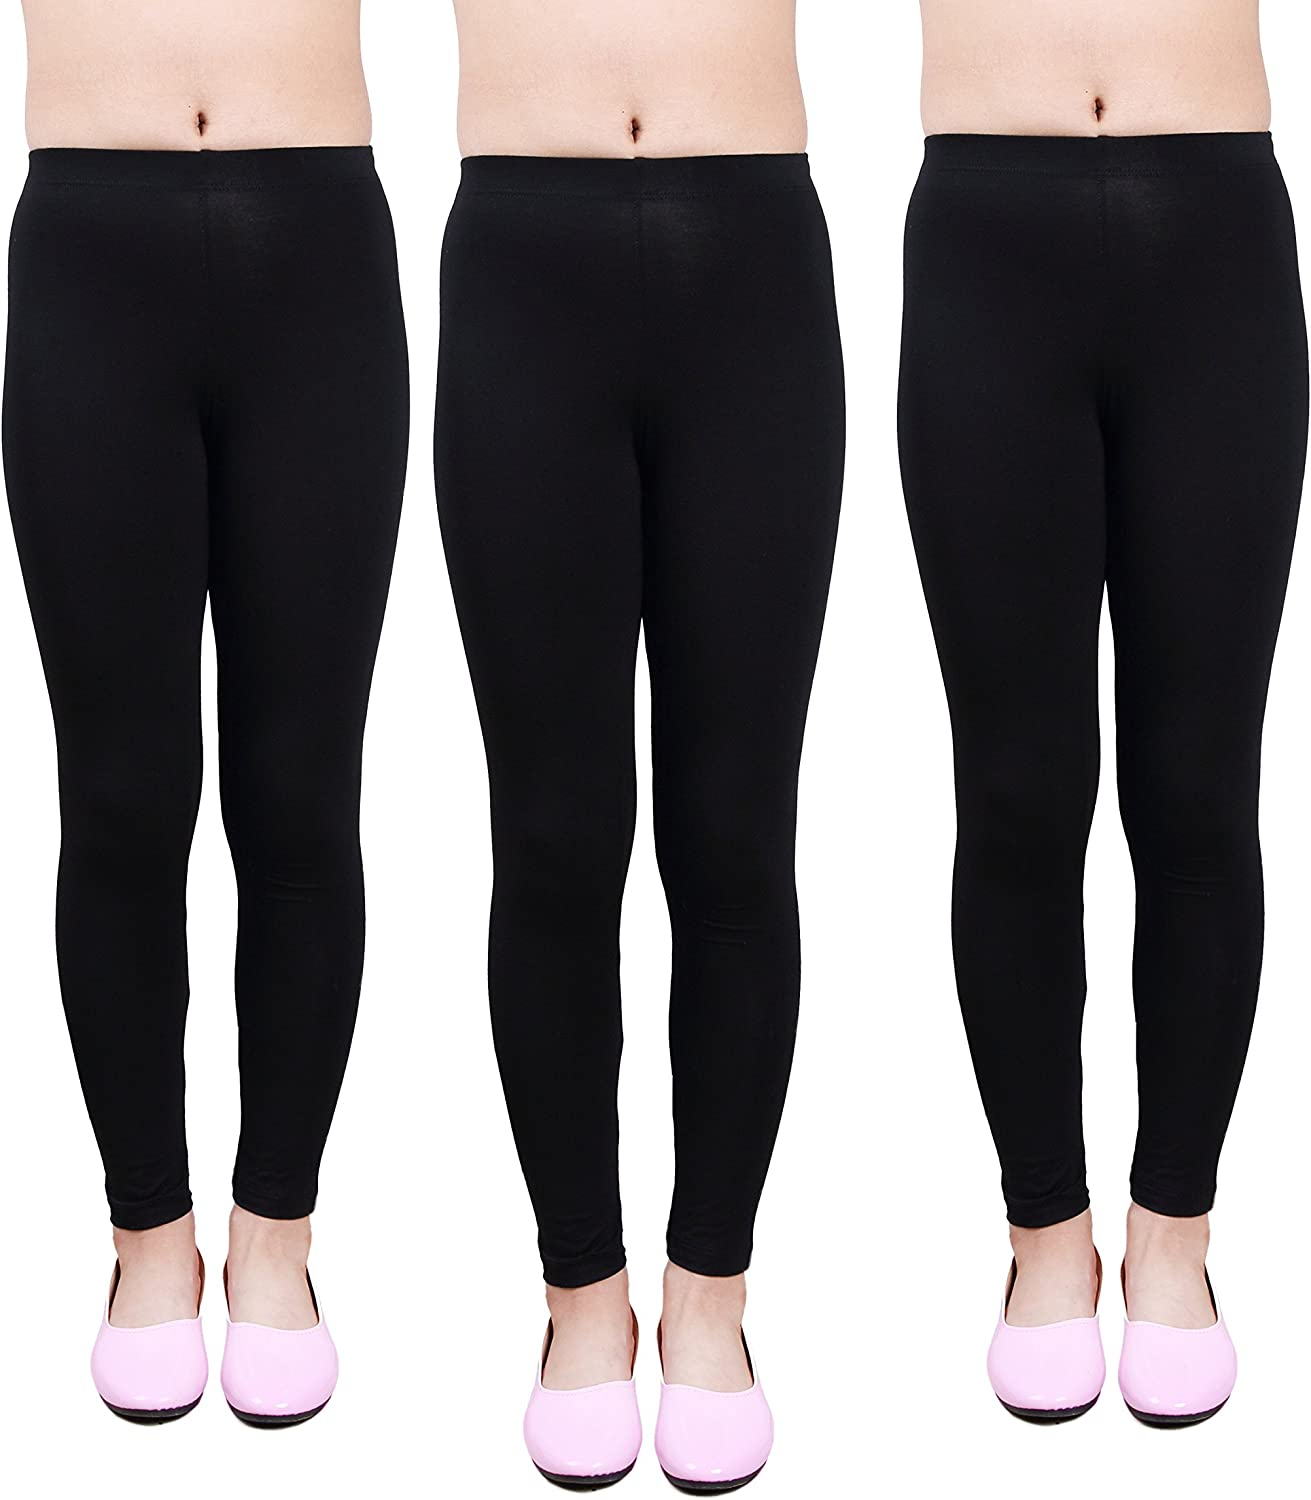 IRELIA Girls Leggings 3 Pack Modal Solid Size 4-16 Spring/Fall: Clothing